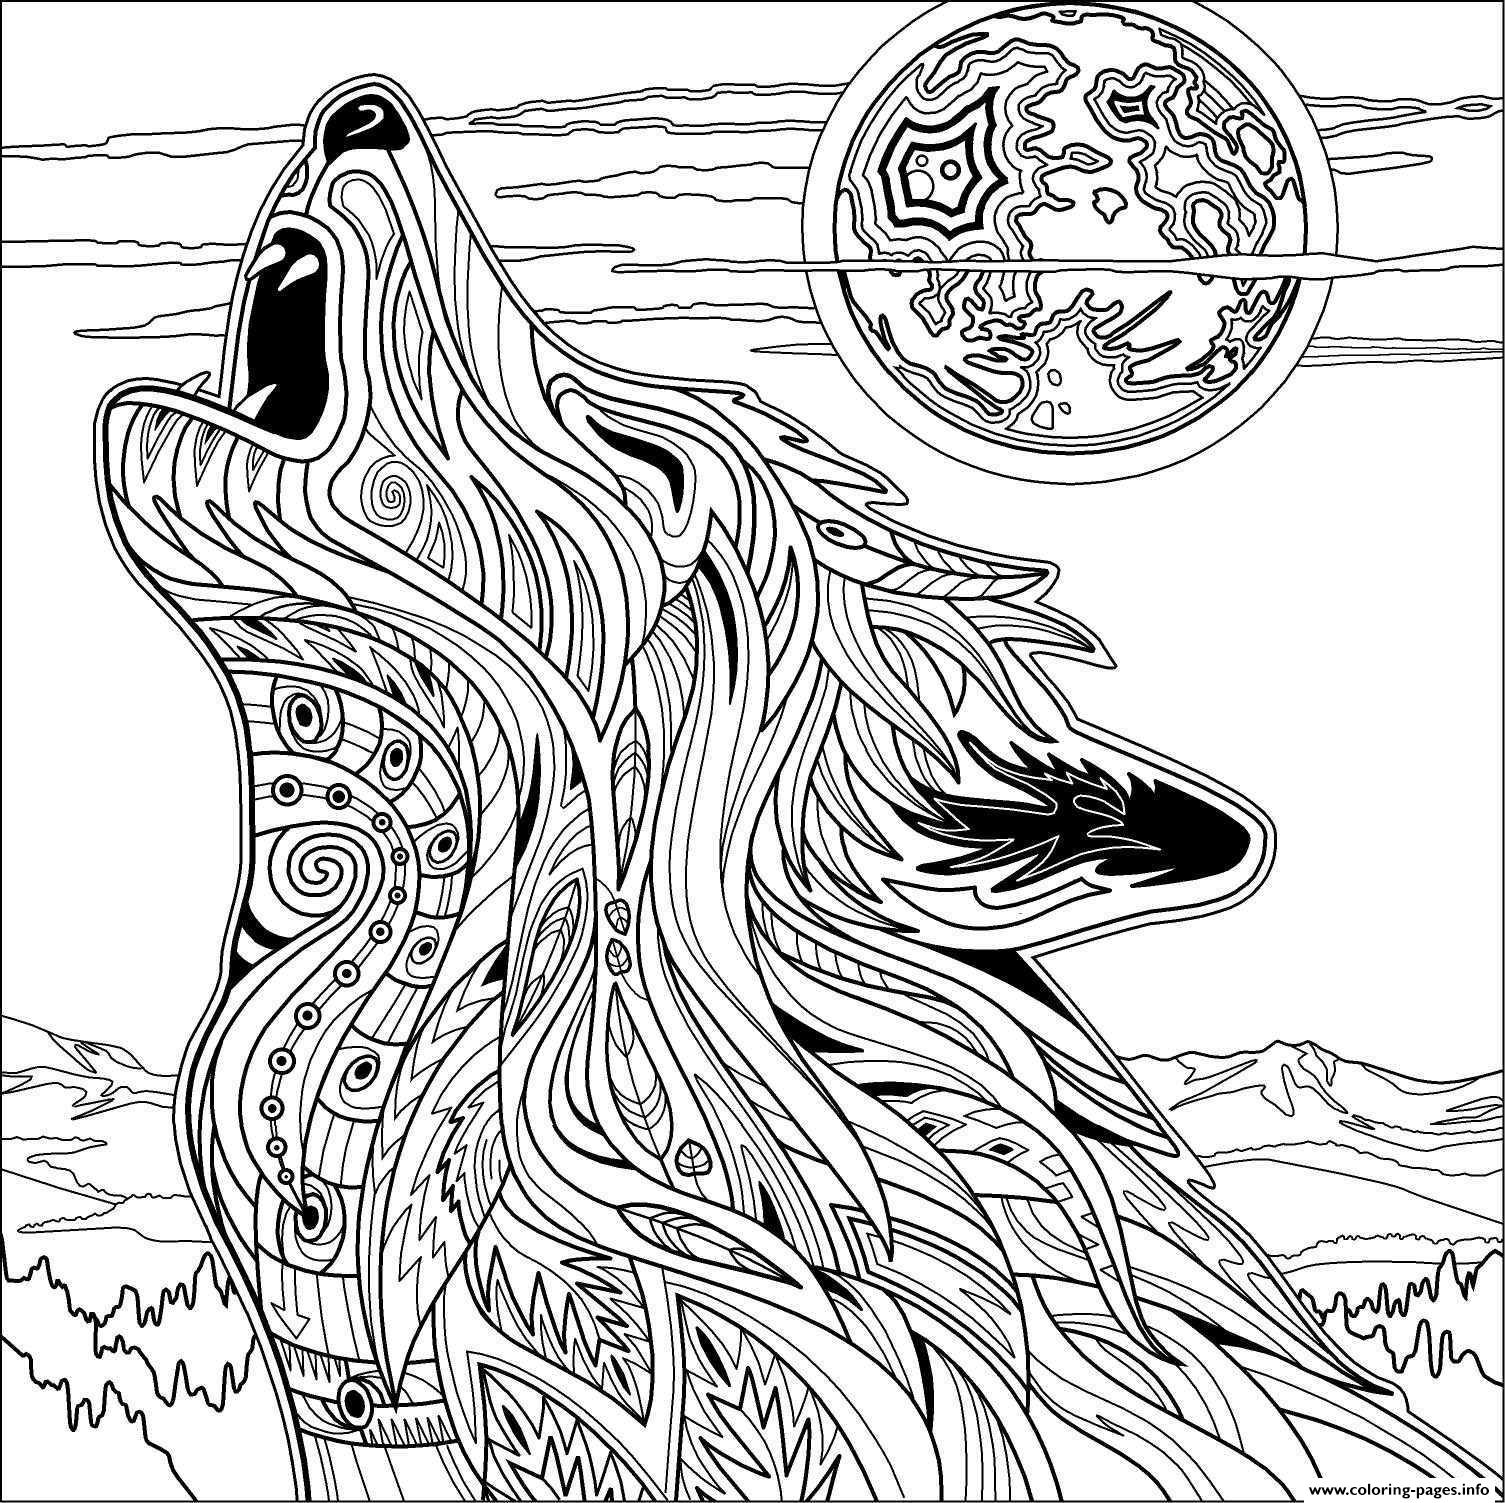 wolf coloring pages for adults get this wolf coloring pages for adults free printable 96993 for wolf pages coloring adults